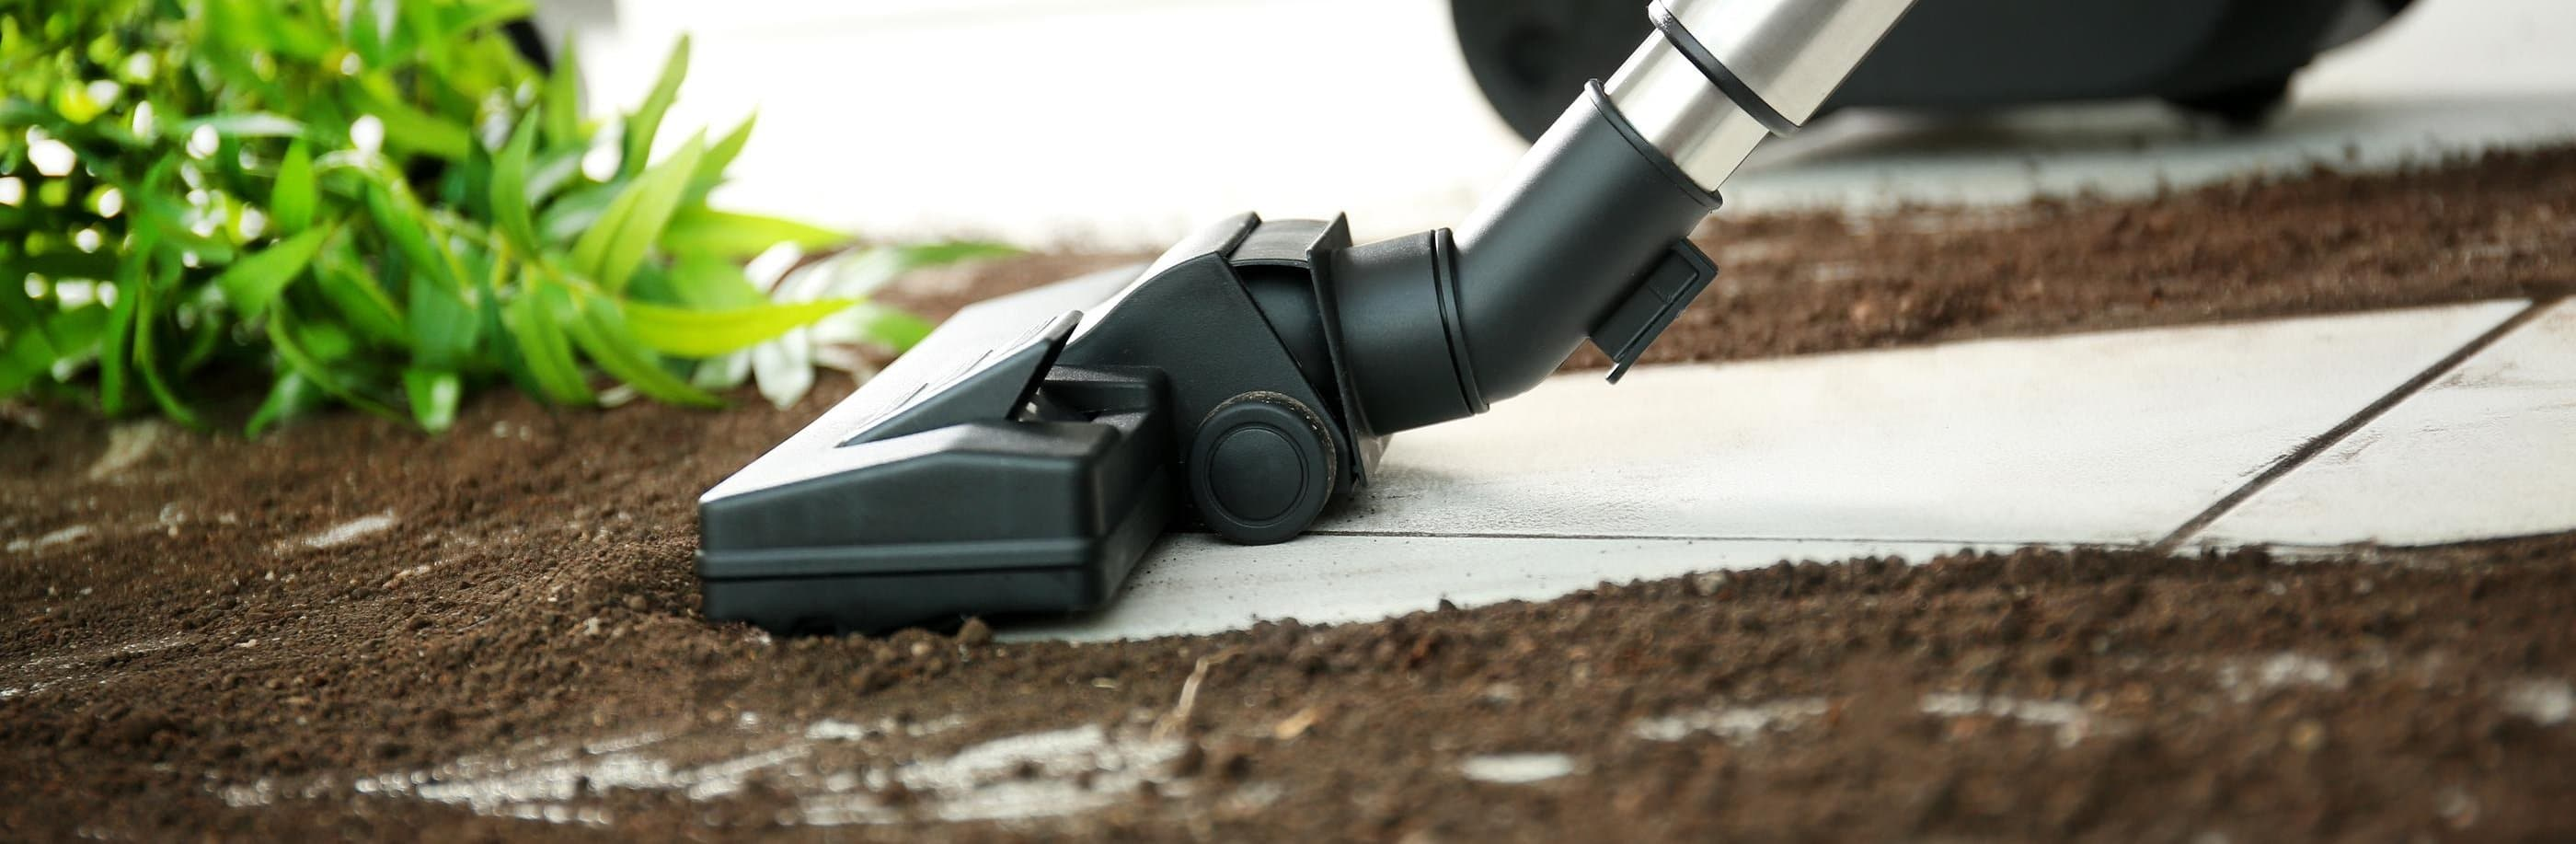 Best Vacuums for Tile Floors